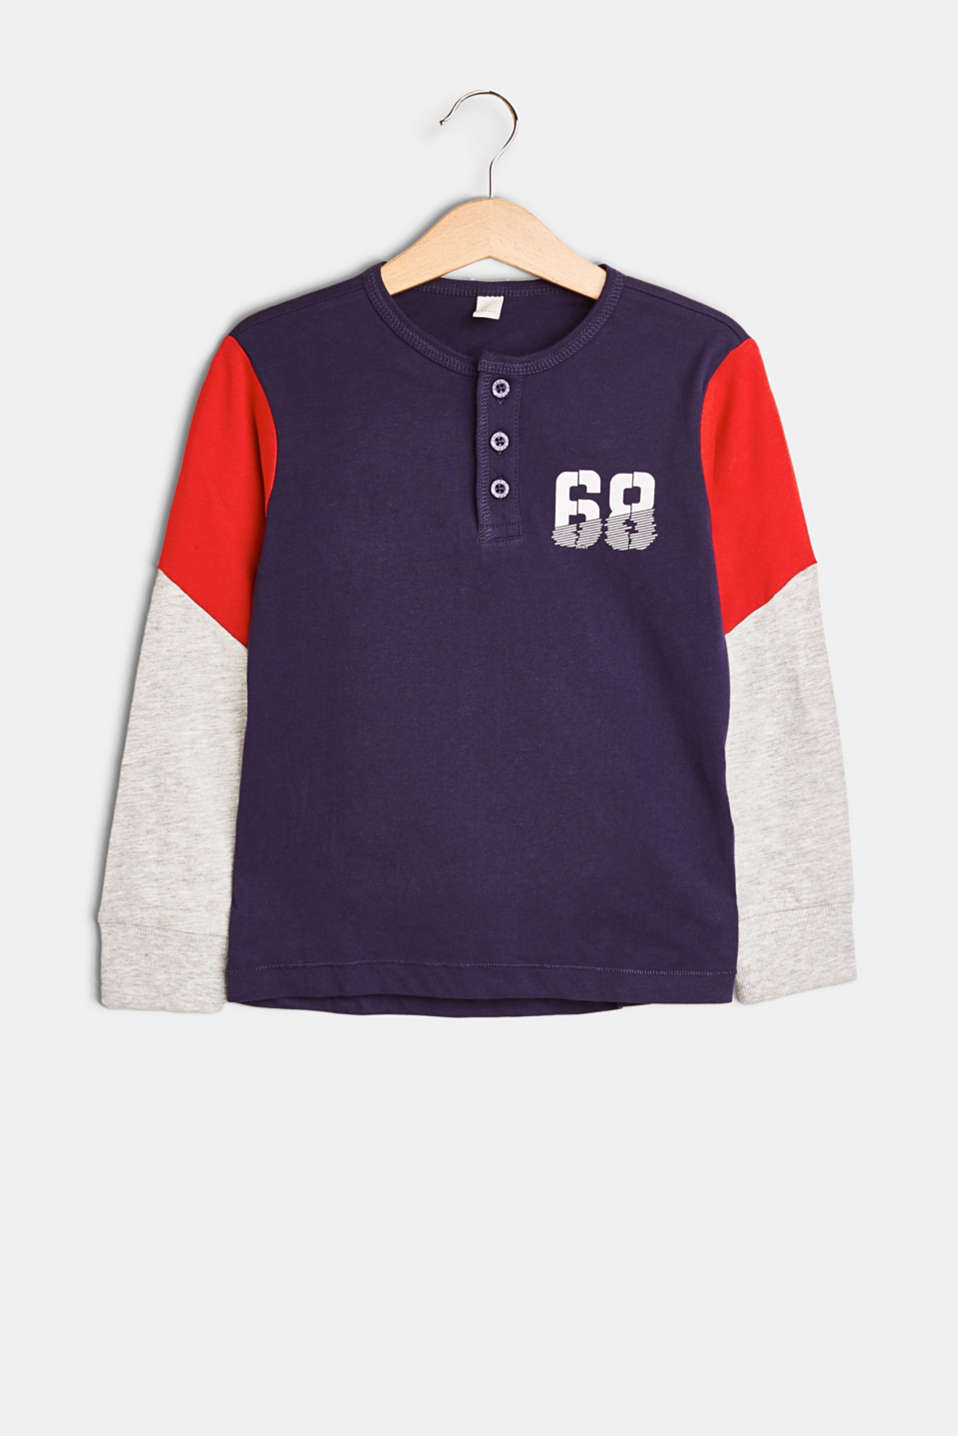 Esprit - Long sleeve Henley T-shirt with number print, in jersey